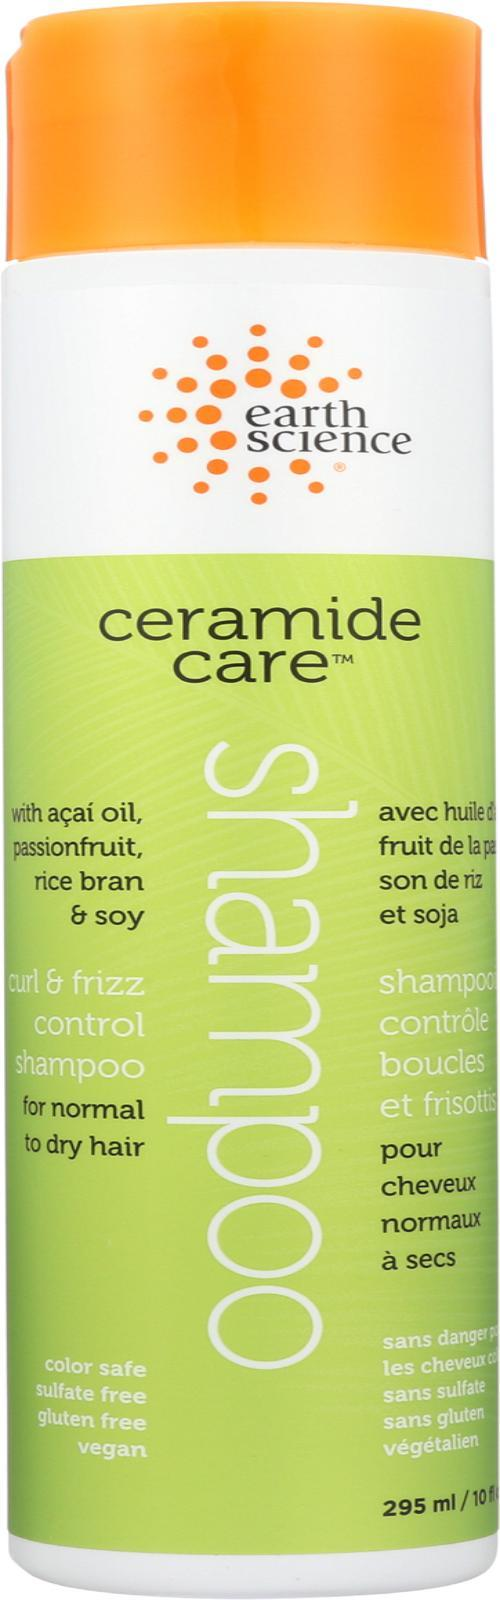 Earth Science Ceramide Care Curl And Frizz Control Shampoo - 10 Fl Oz. - BeeGreen